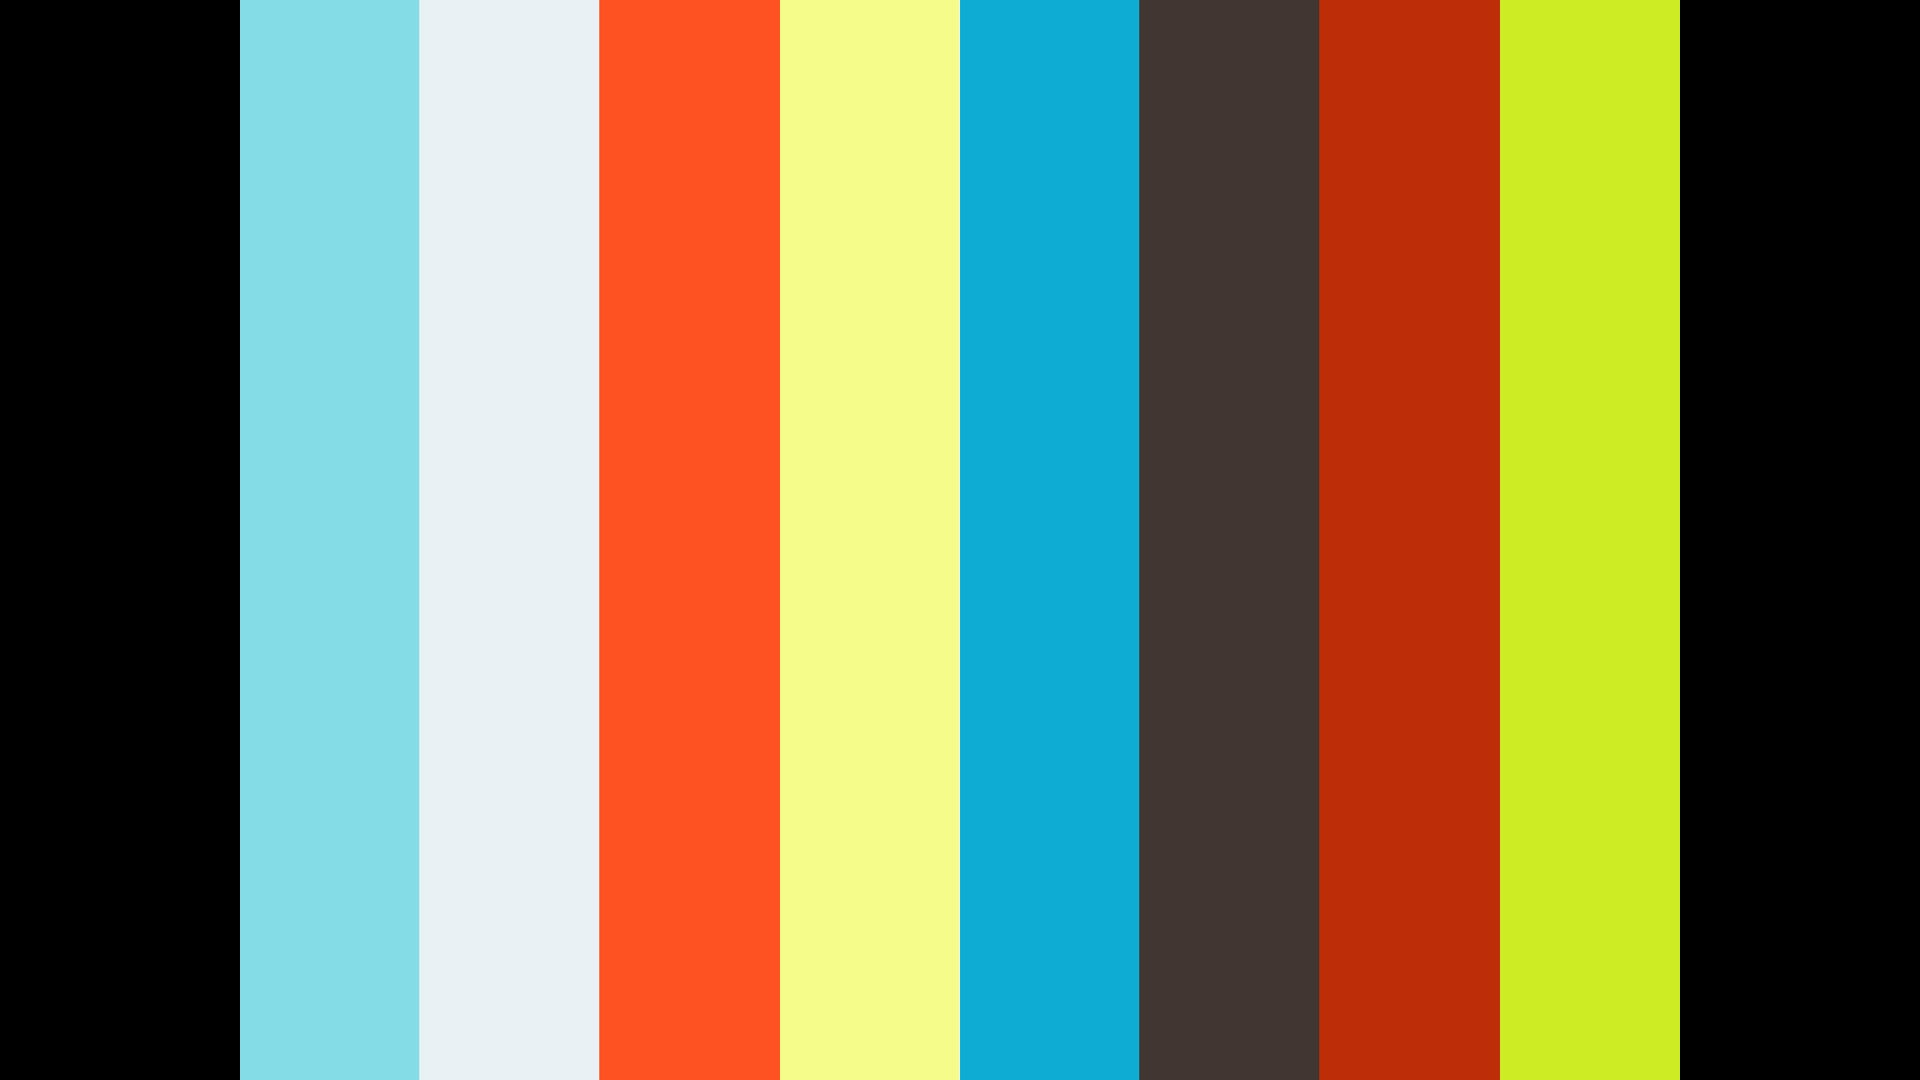 Ethiopianismtv # ንትርክ crosstalk TPLF Criminals and Ethiopian future የህወሃት ወንጀለኞች እና 23 Aug 201